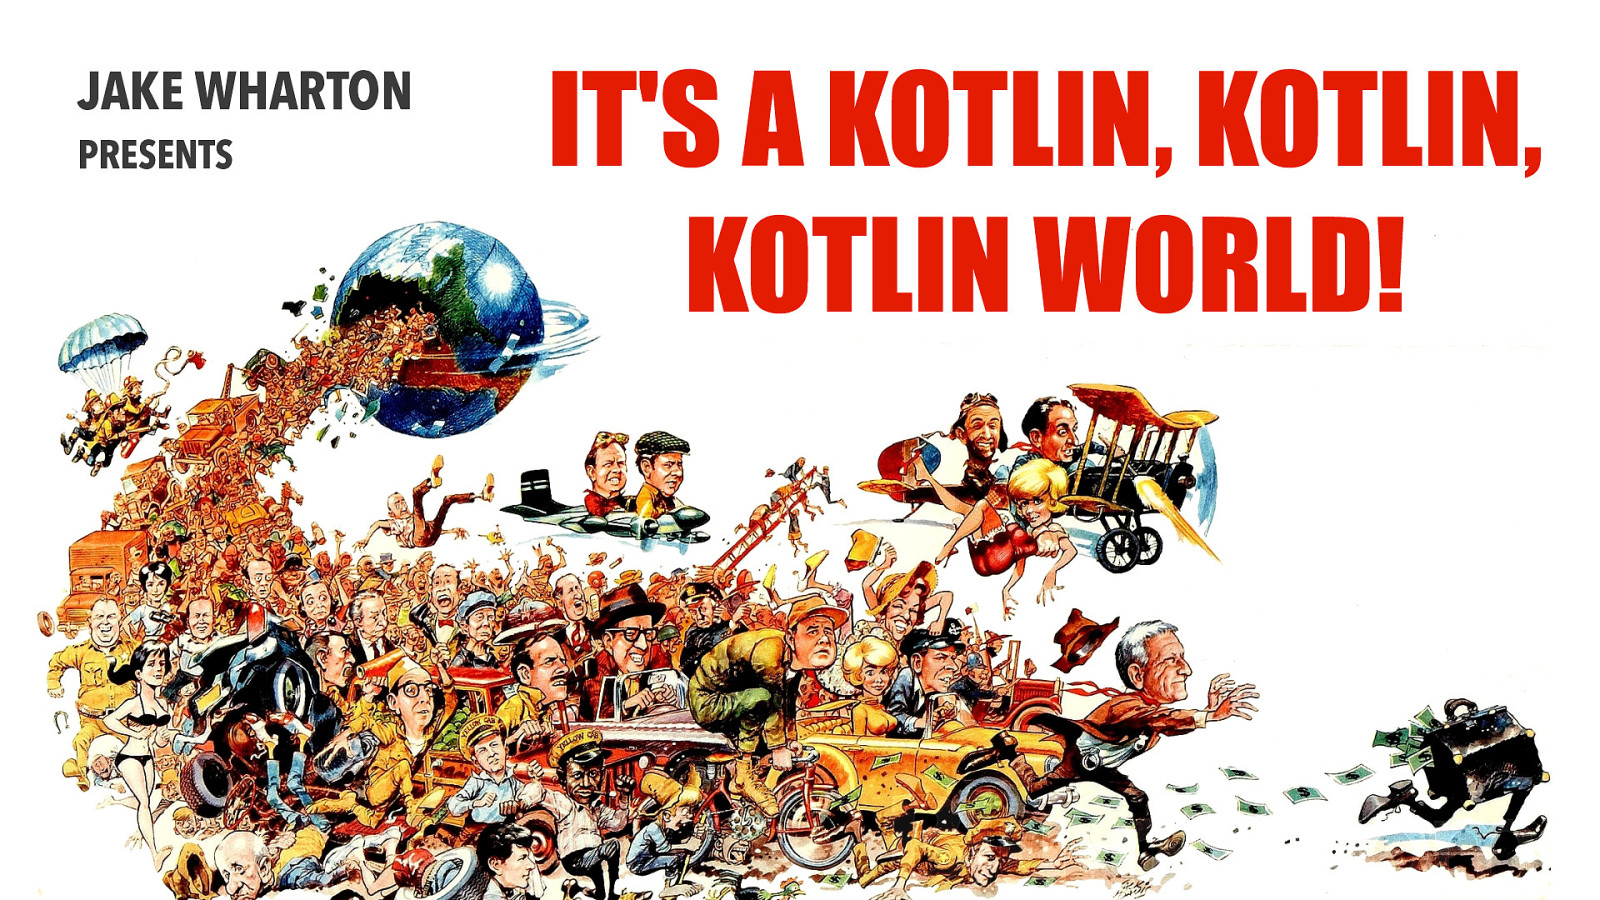 It's a Kotlin, Kotlin, Kotlin World